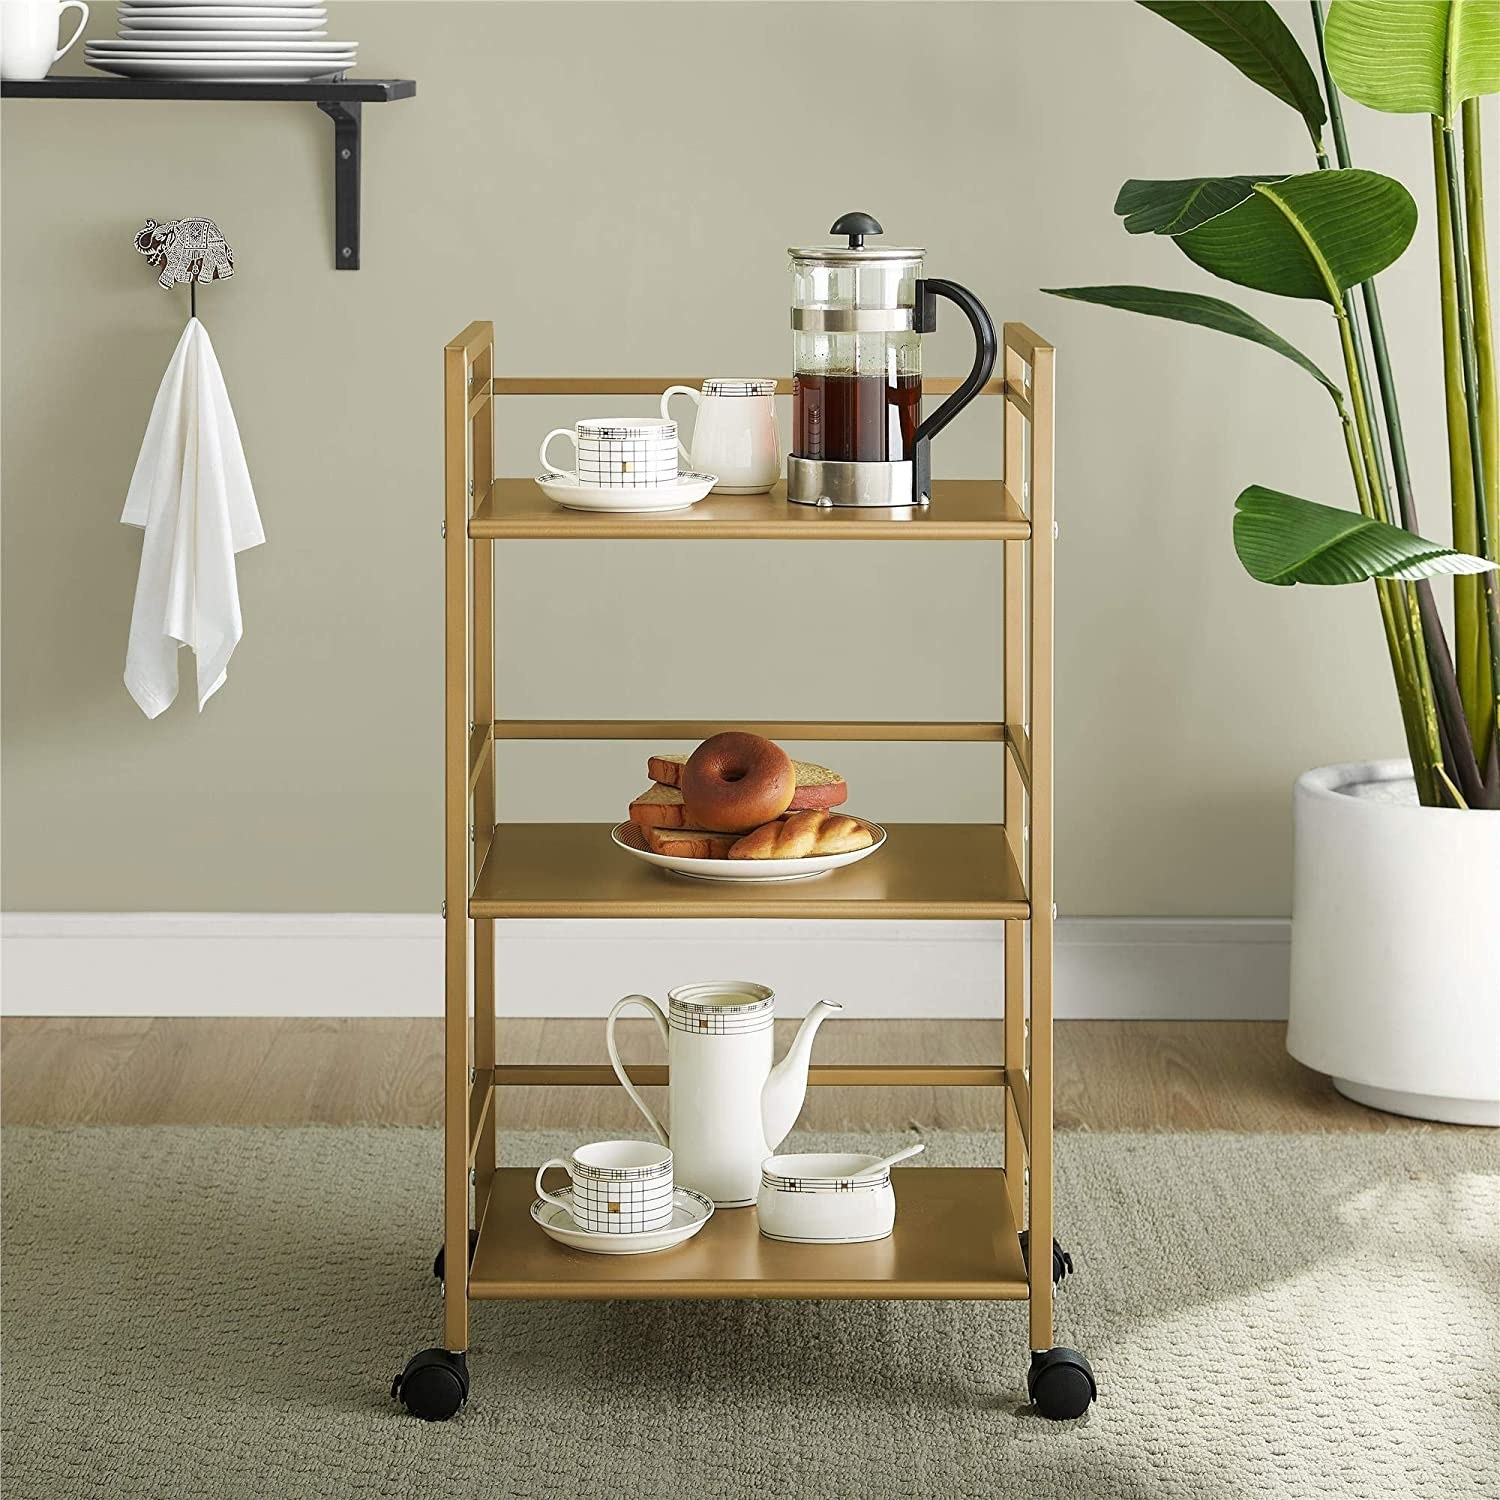 The three-tiered gold shelf with wheels